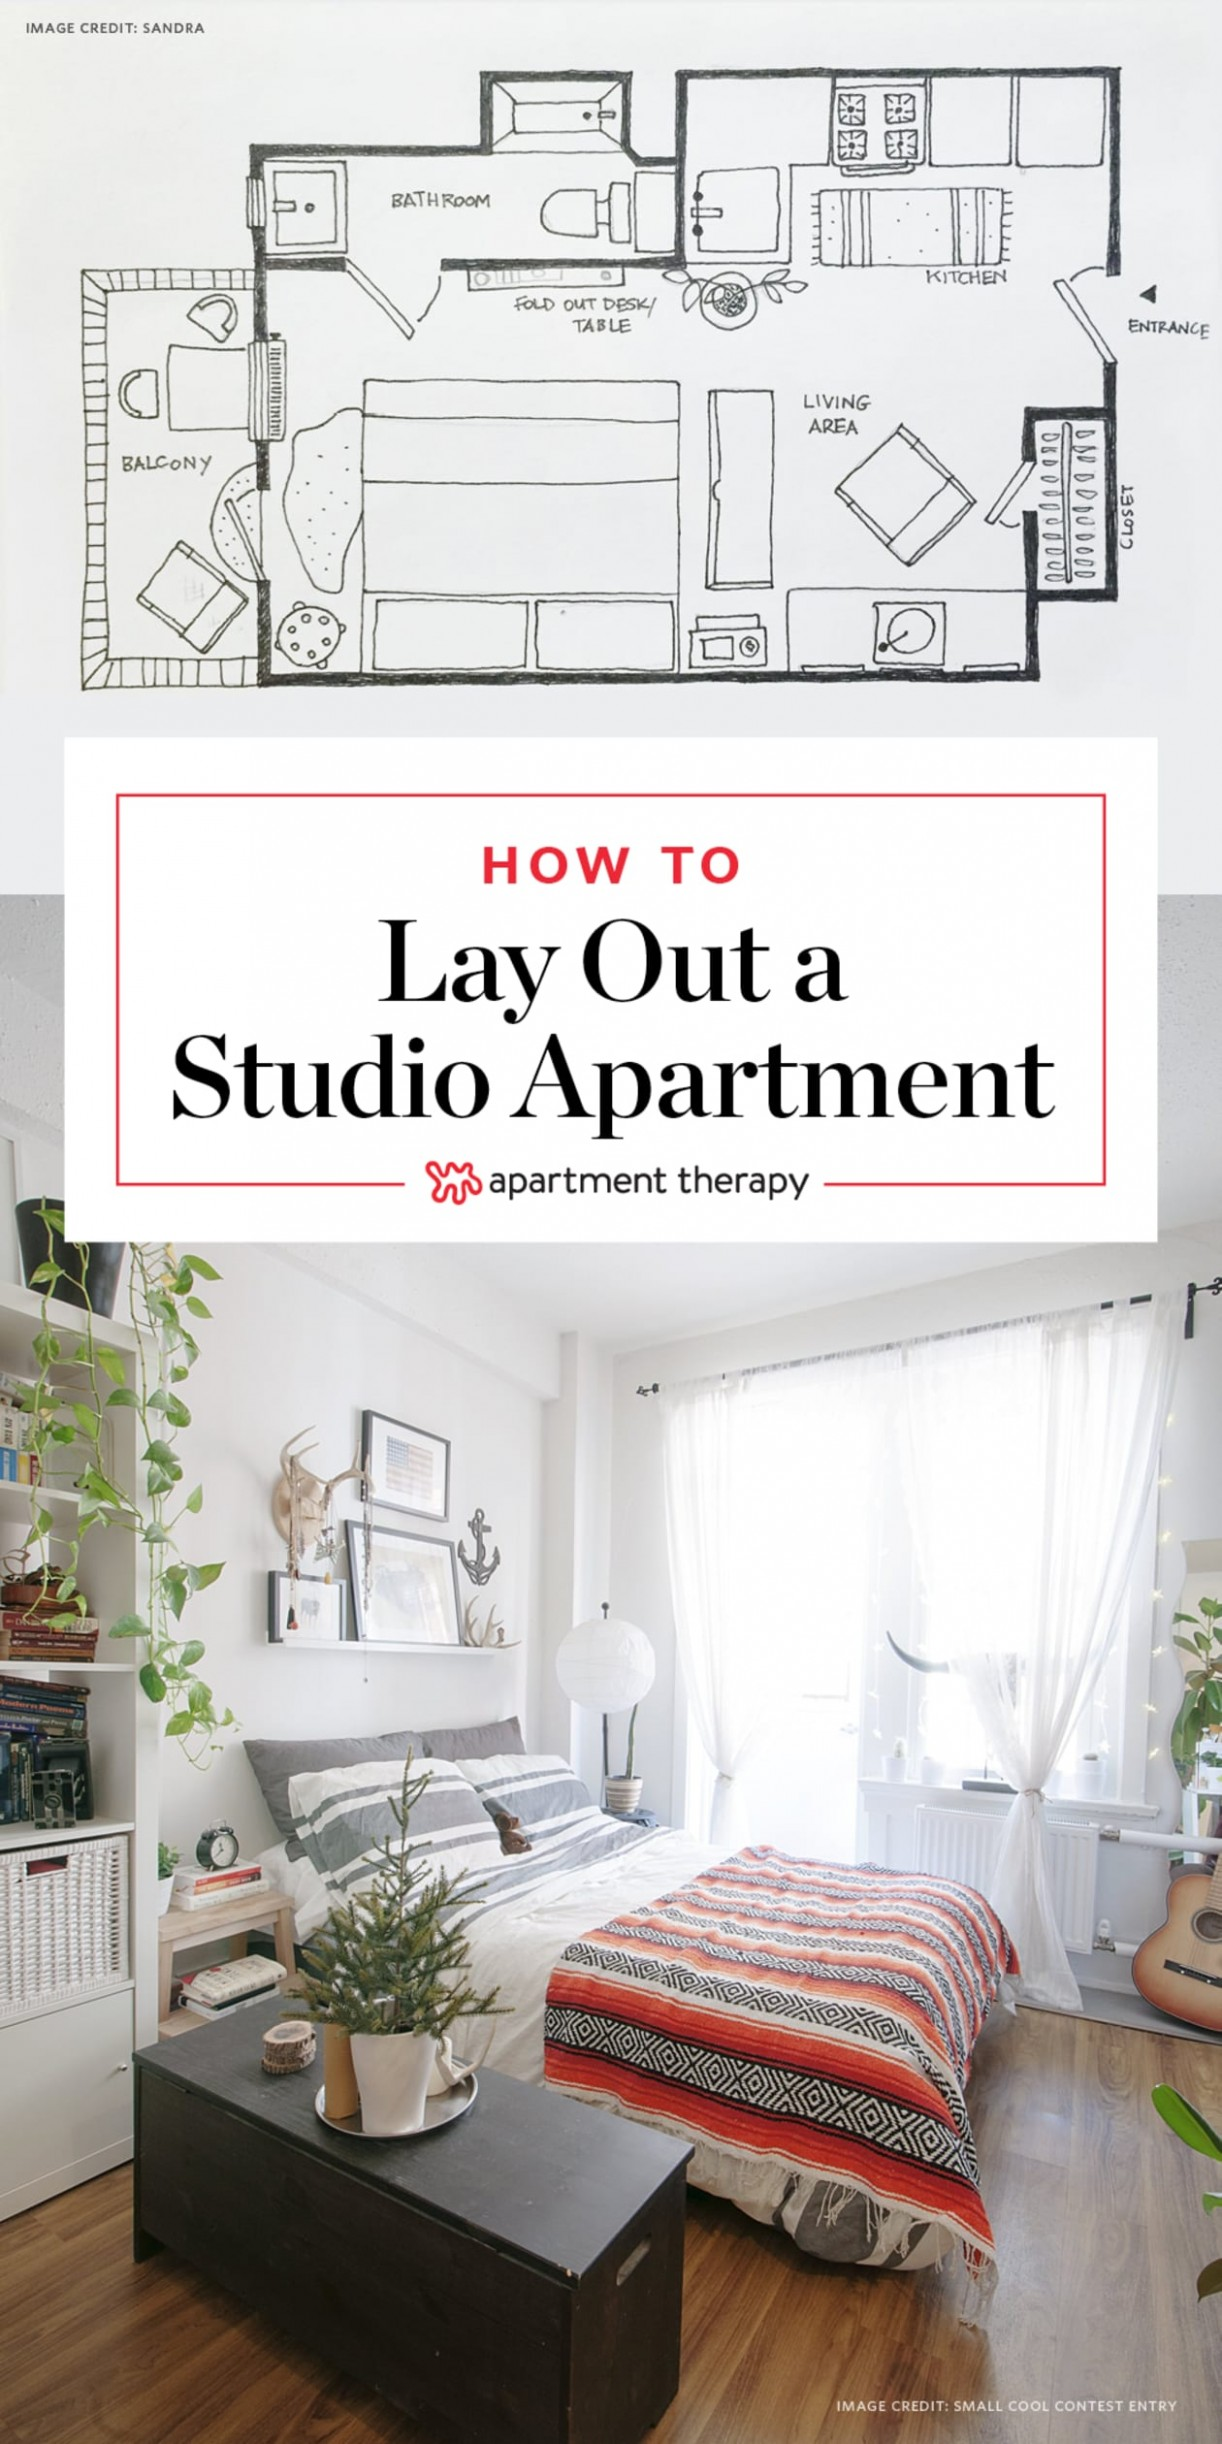 12 Ways to Lay Out a Studio Apartment  Apartment Therapy - Apartment Decorating Layout Ideas